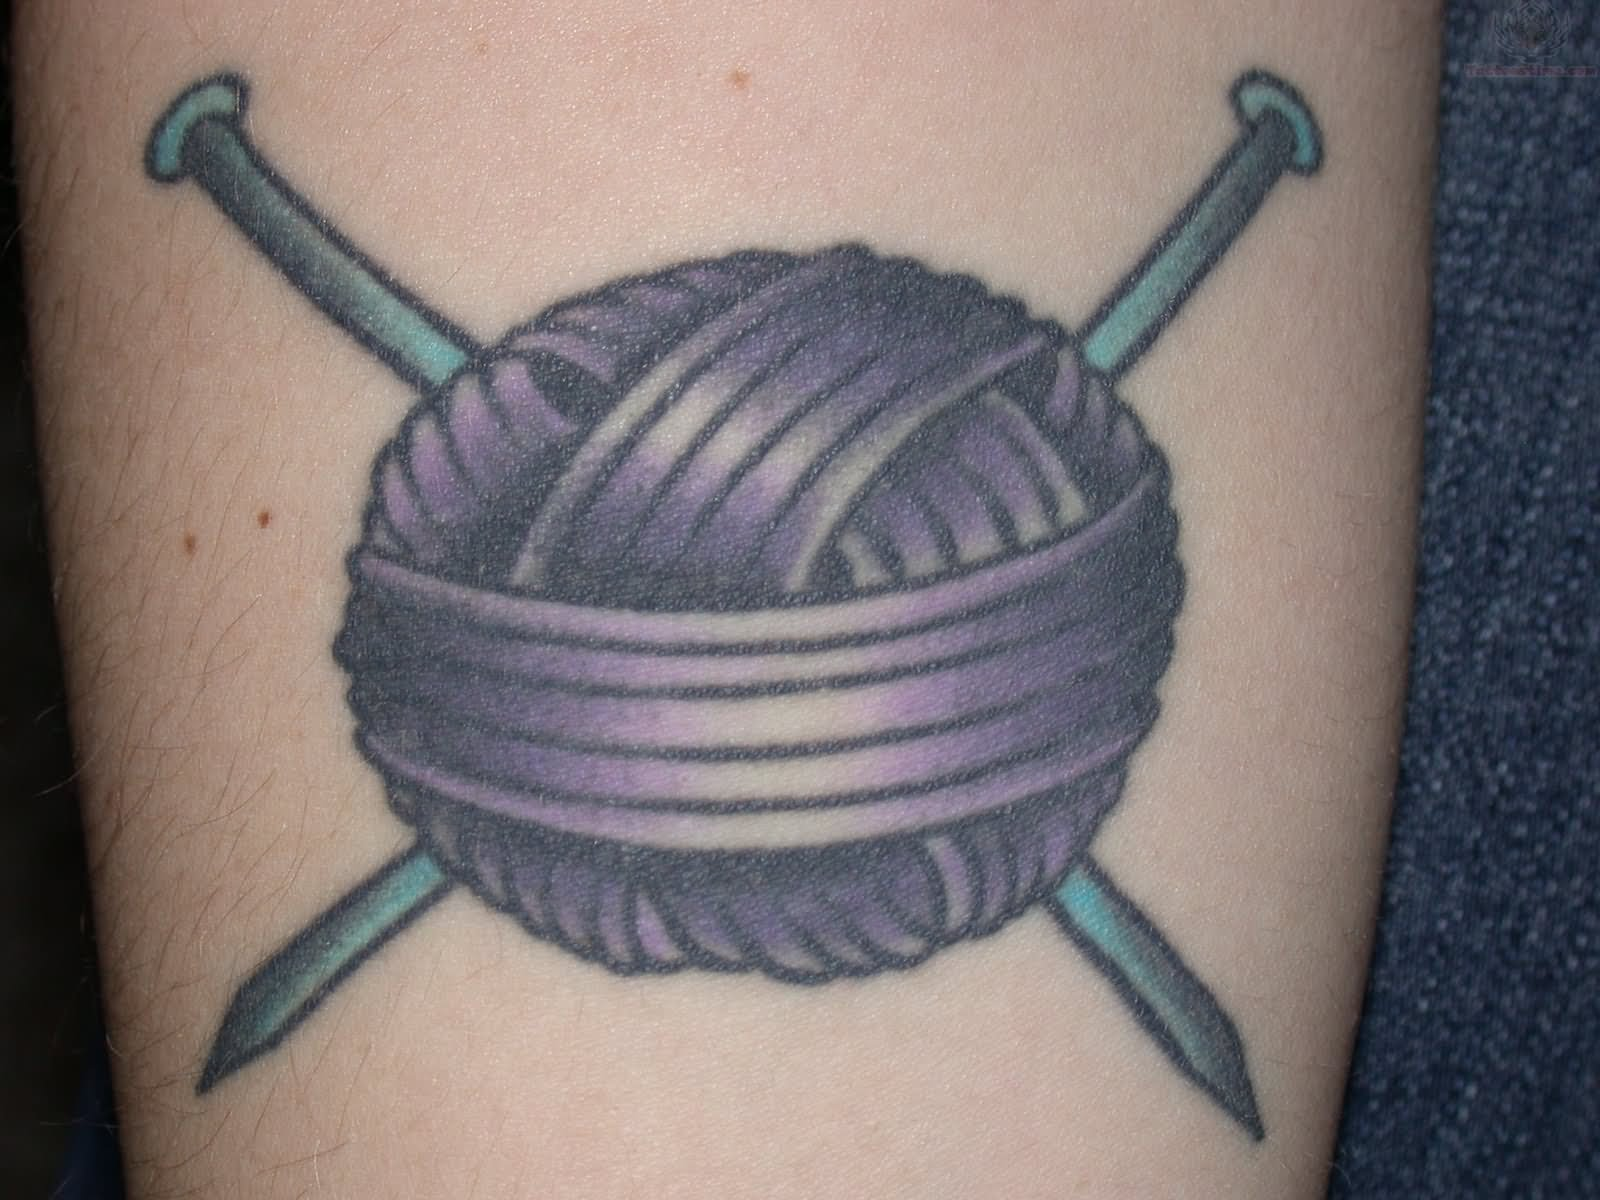 Knitting Needle Tattoo : Knitting tattoo designs